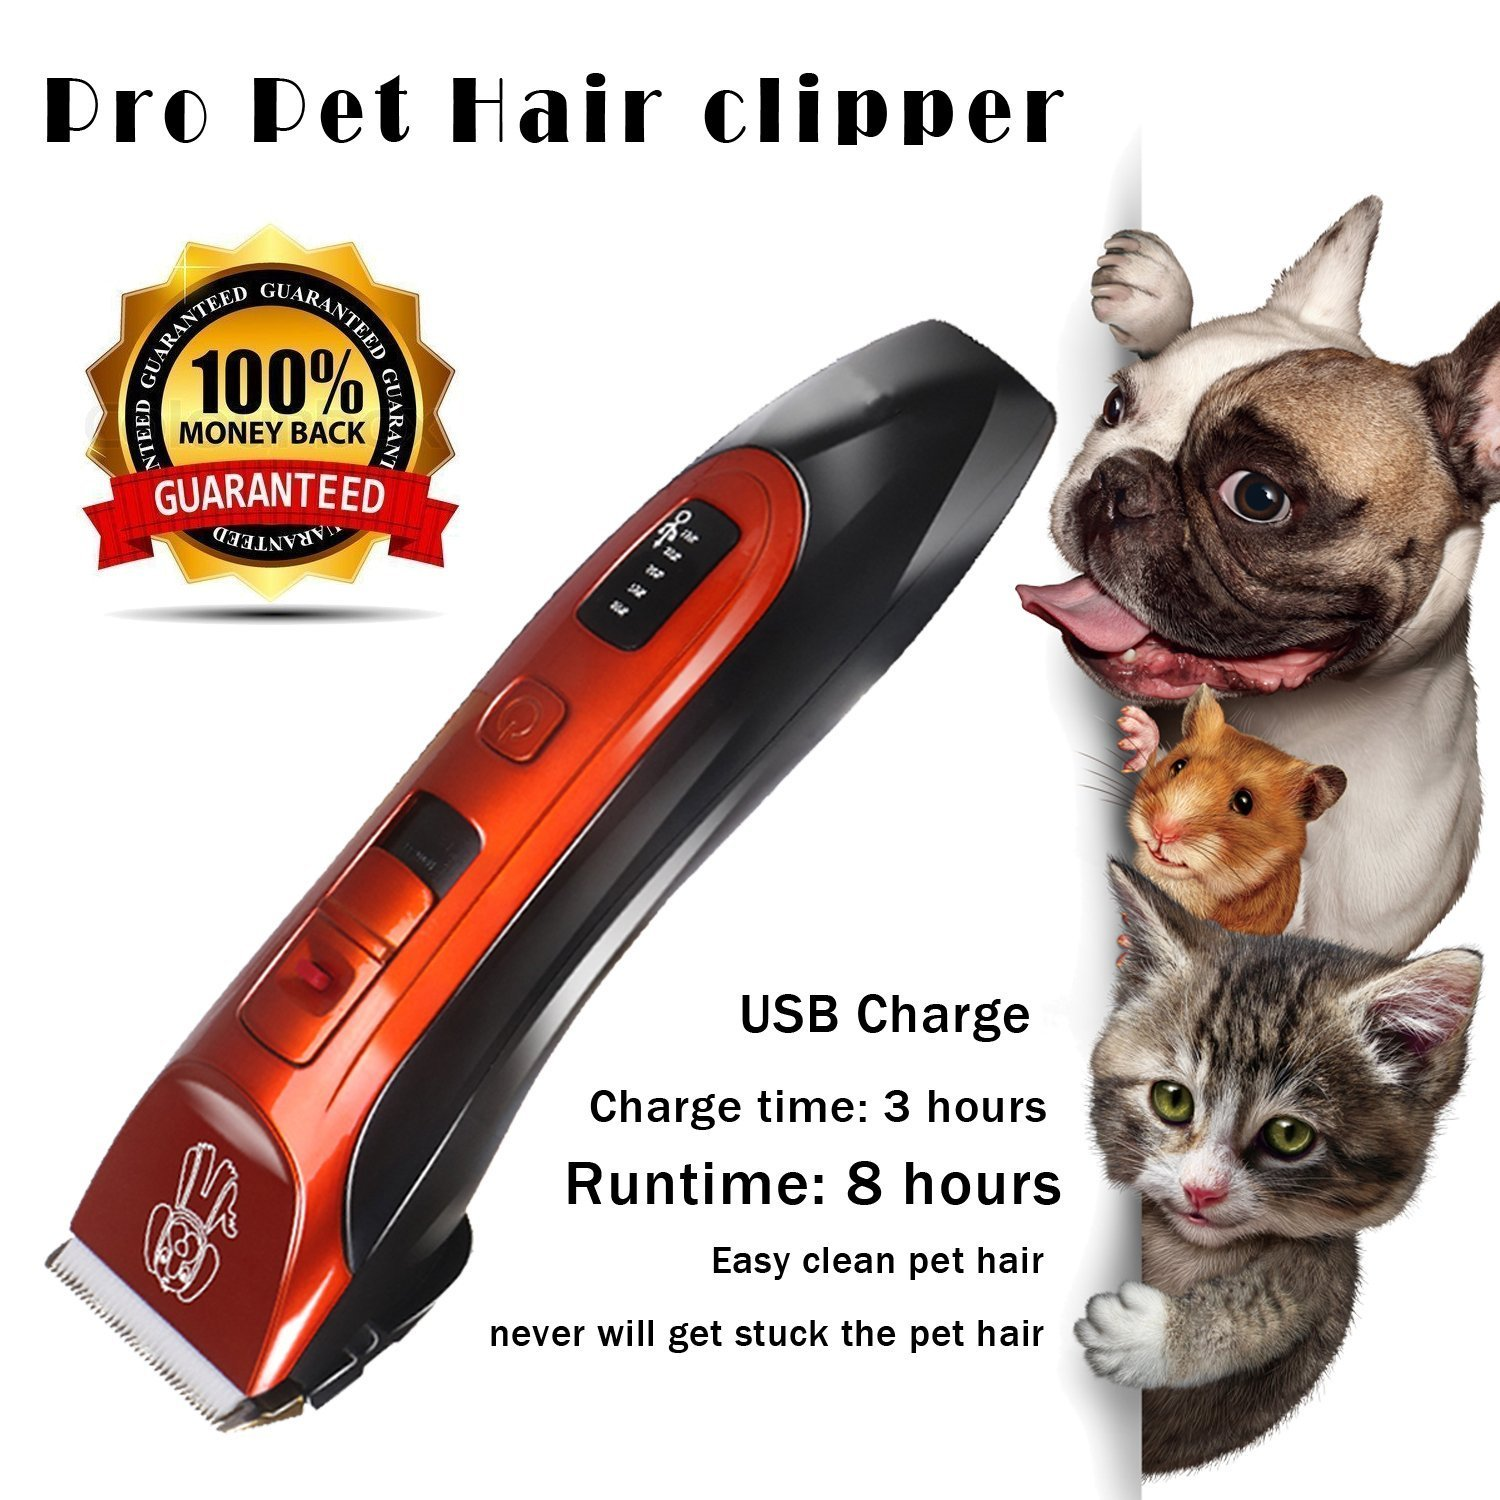 Dog Hair Clippers Low Noise Cordless Rechargeable Pet Hair trimmer, Pet Grooming Clipper,Professional Heavy Duty Pet Grooming Clippers for Thick Hair Dogs, Cats and Horses